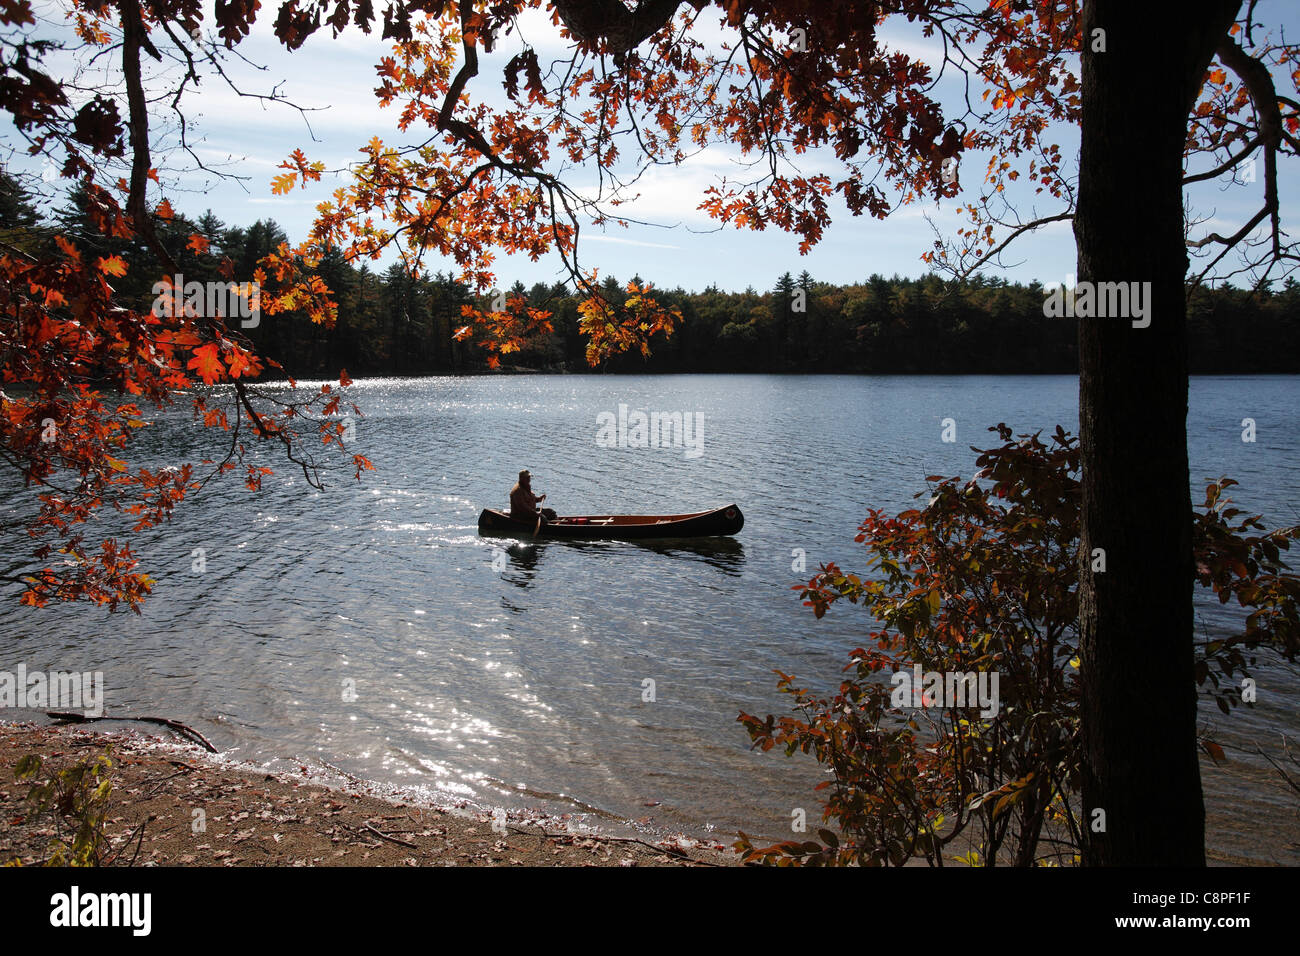 Man in a canoe on Walden Pond, Concord, Massachusetts - Stock Image